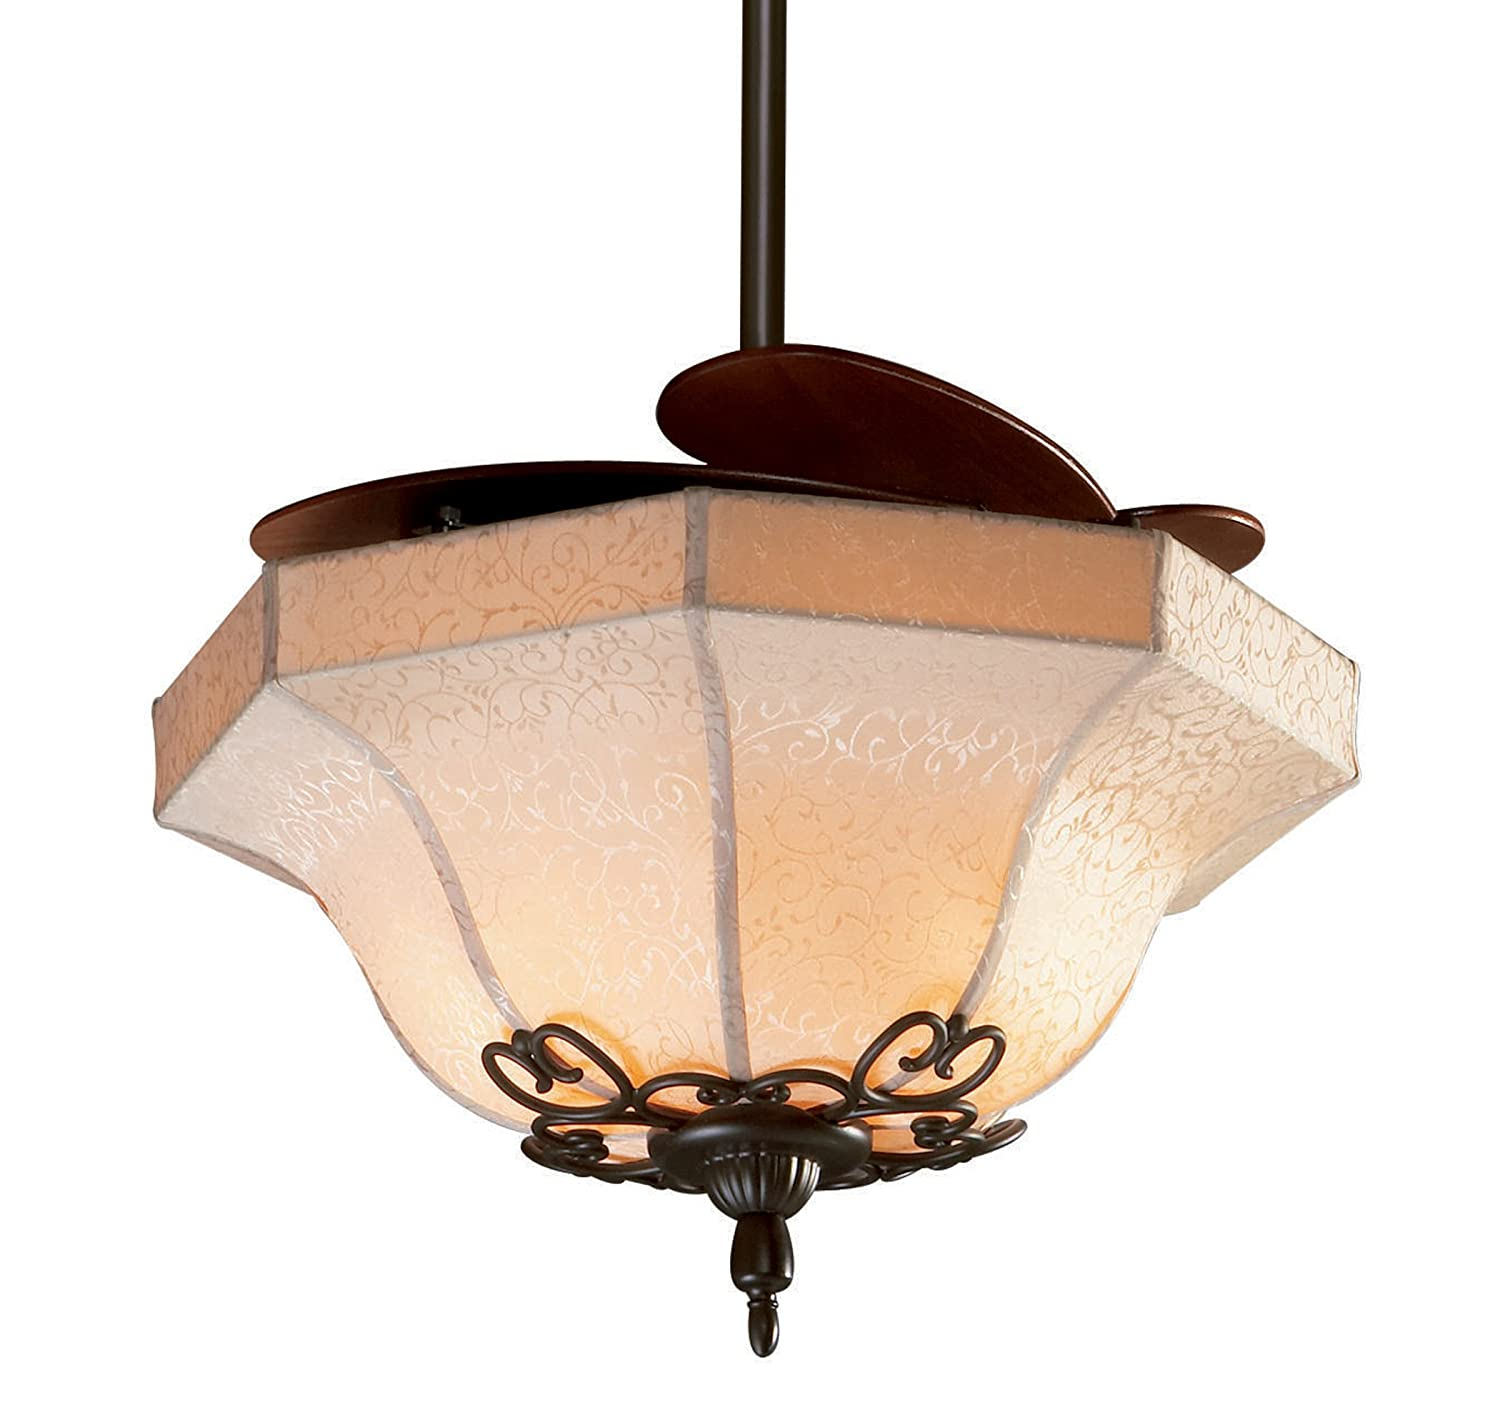 lighting light retractable fan inch amazon westinghouse kit aged fans outdoor ceiling indoor com walnut b brentford